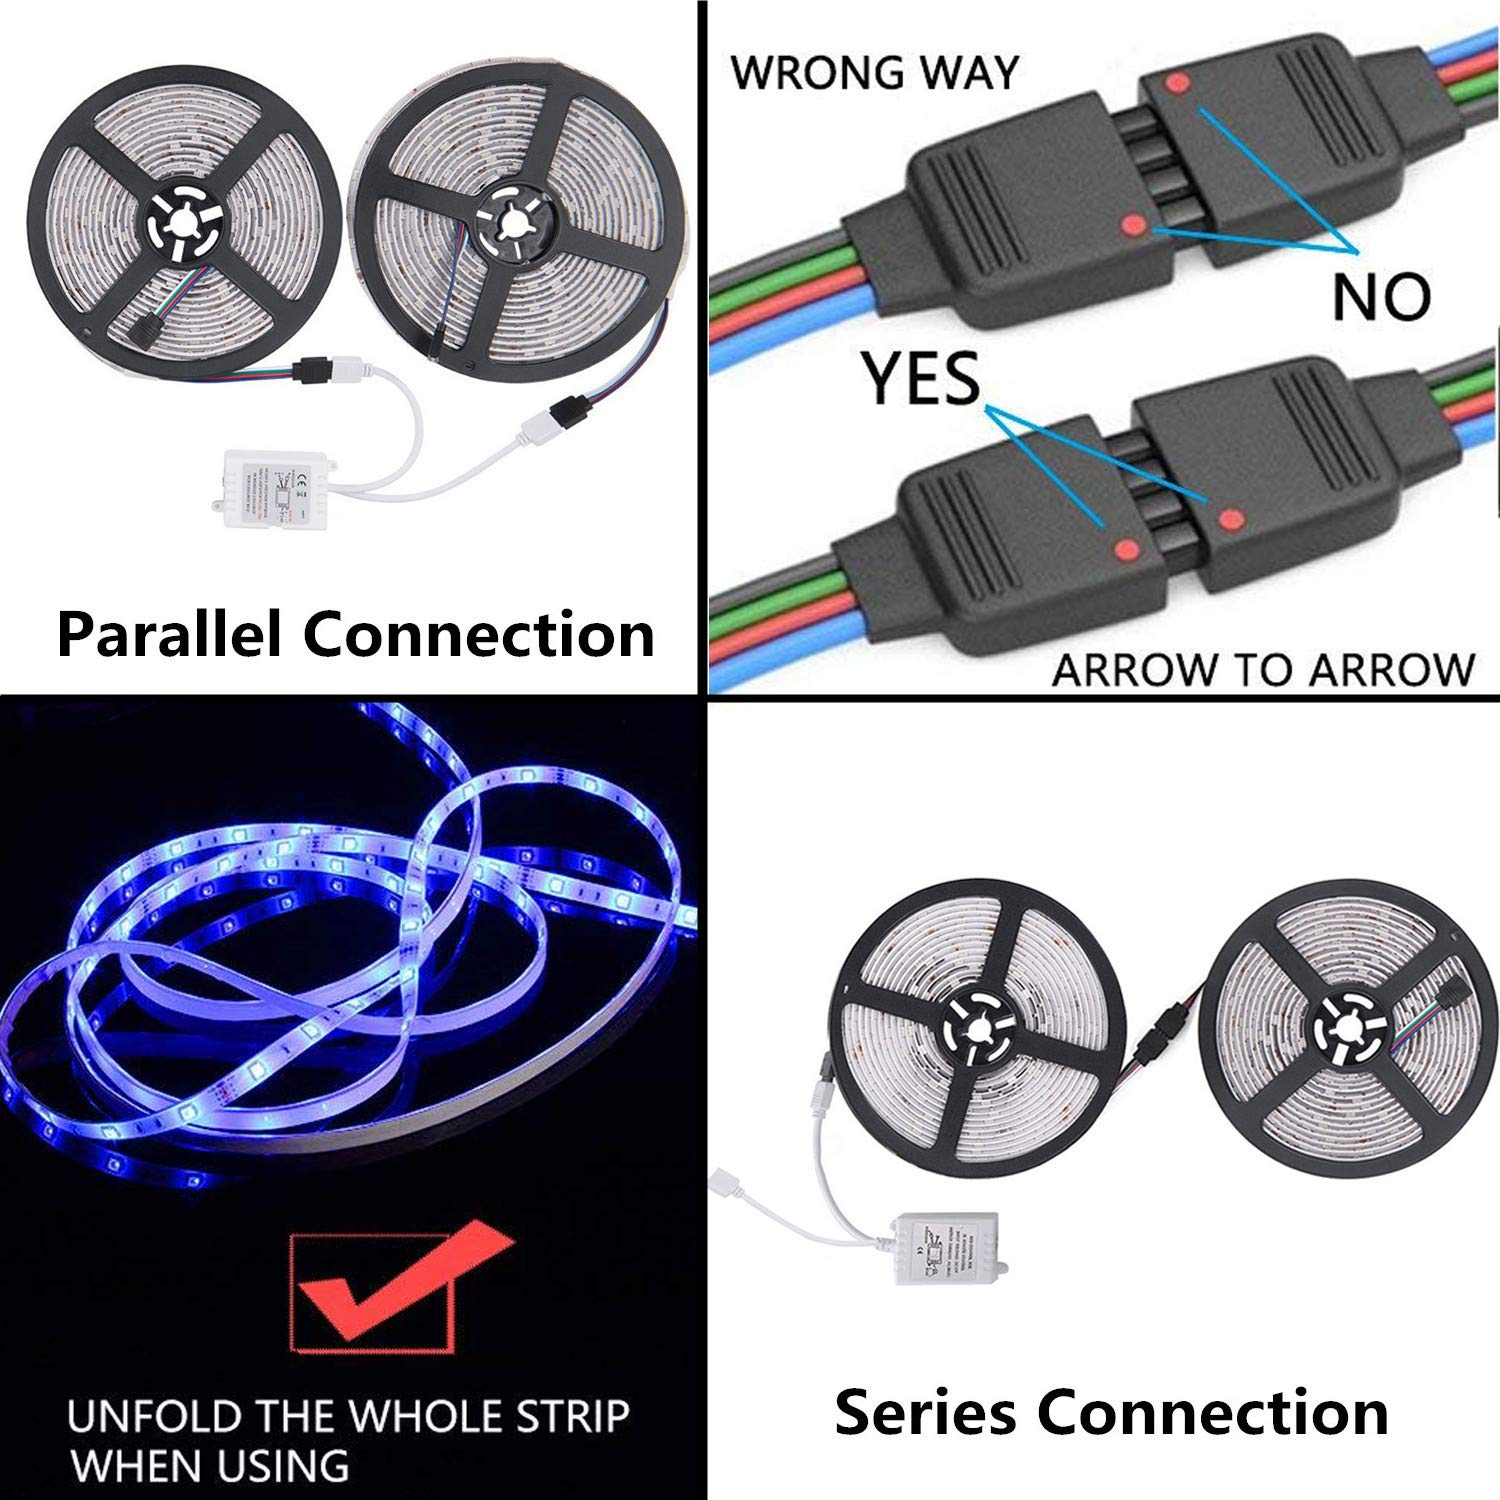 Starlotus Led Strip Lights 32.8ft//10M 300Leds SMD5050 RGB Waterproof Led Rope Light with Sponge Adhesive,360/°Signal 44Key RF Wireless Remote Controller,DC12V Power Supply for Holiday Party Decoration